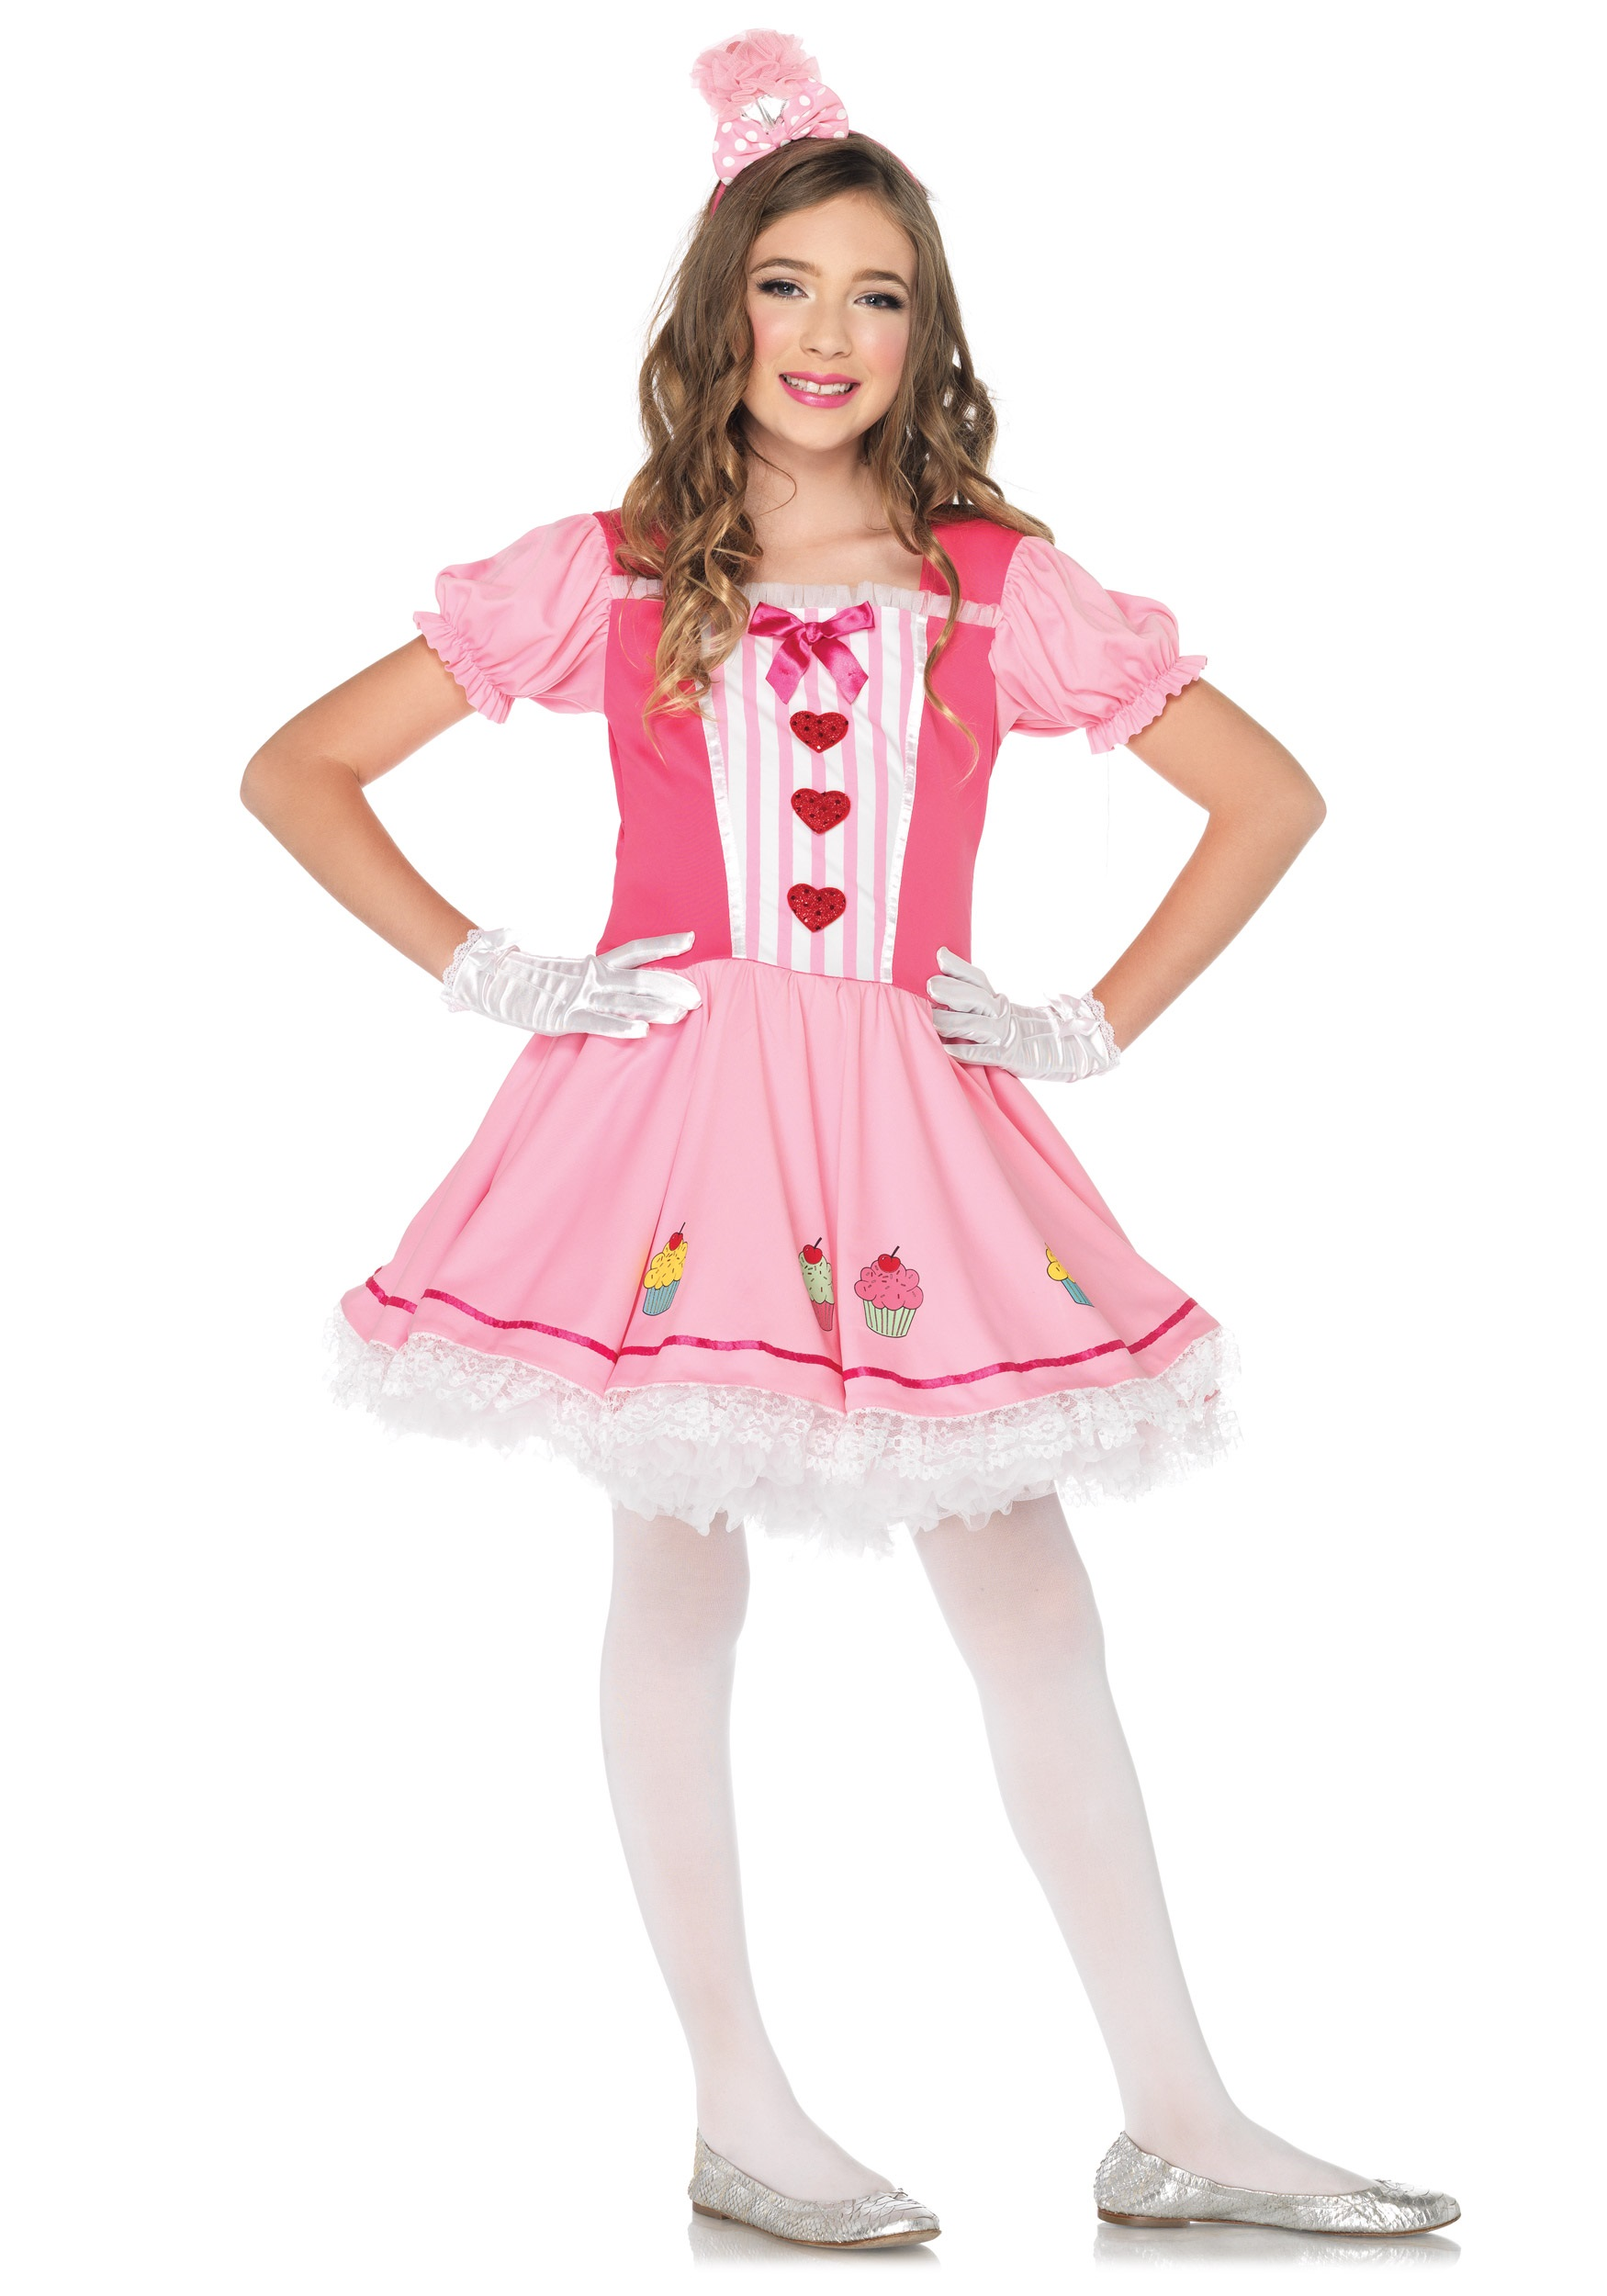 Lil Miss Cupcake Costume - Halloween Costumes